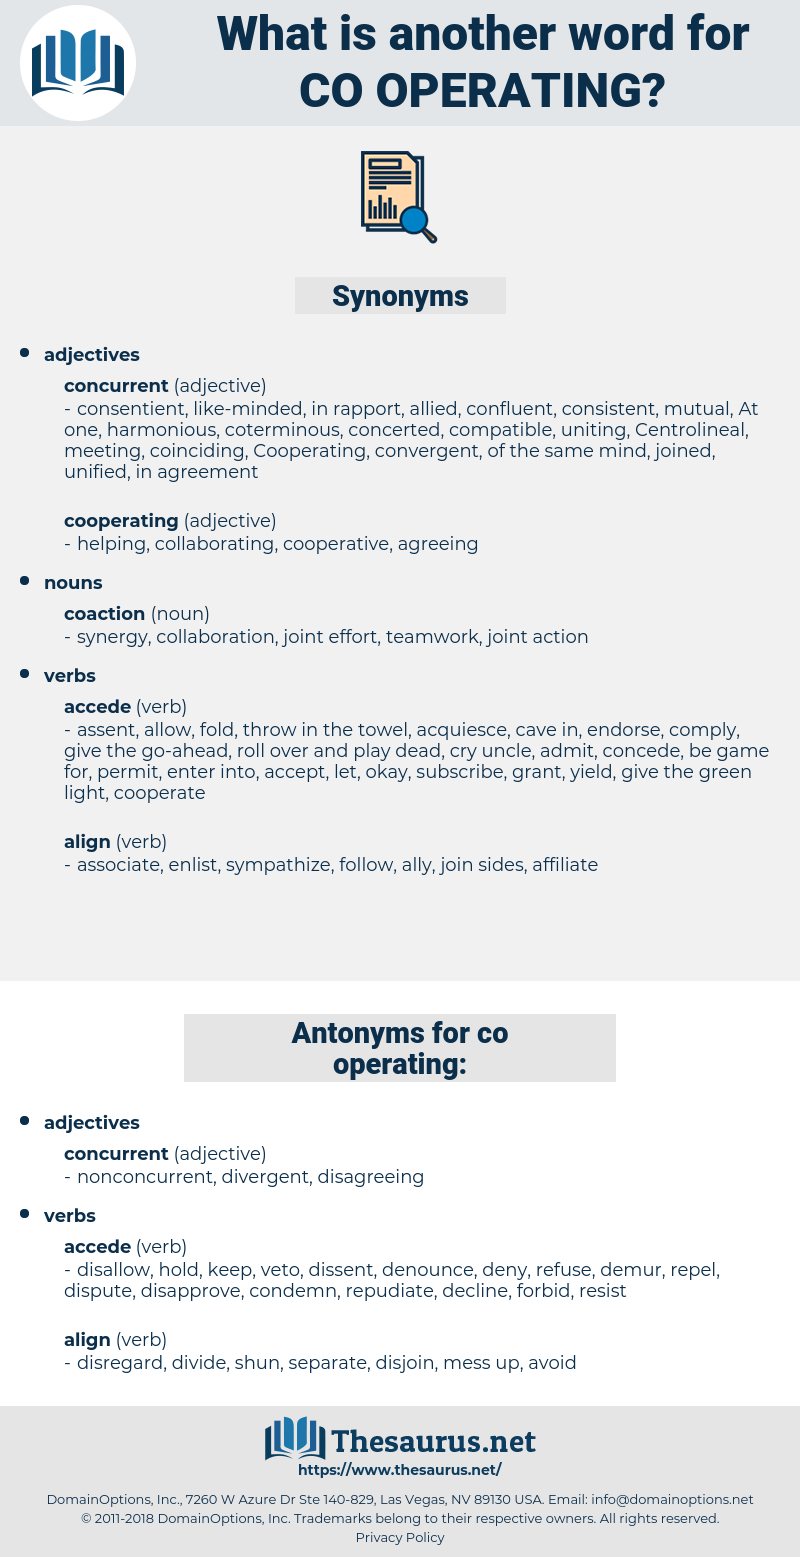 co-operating, synonym co-operating, another word for co-operating, words like co-operating, thesaurus co-operating